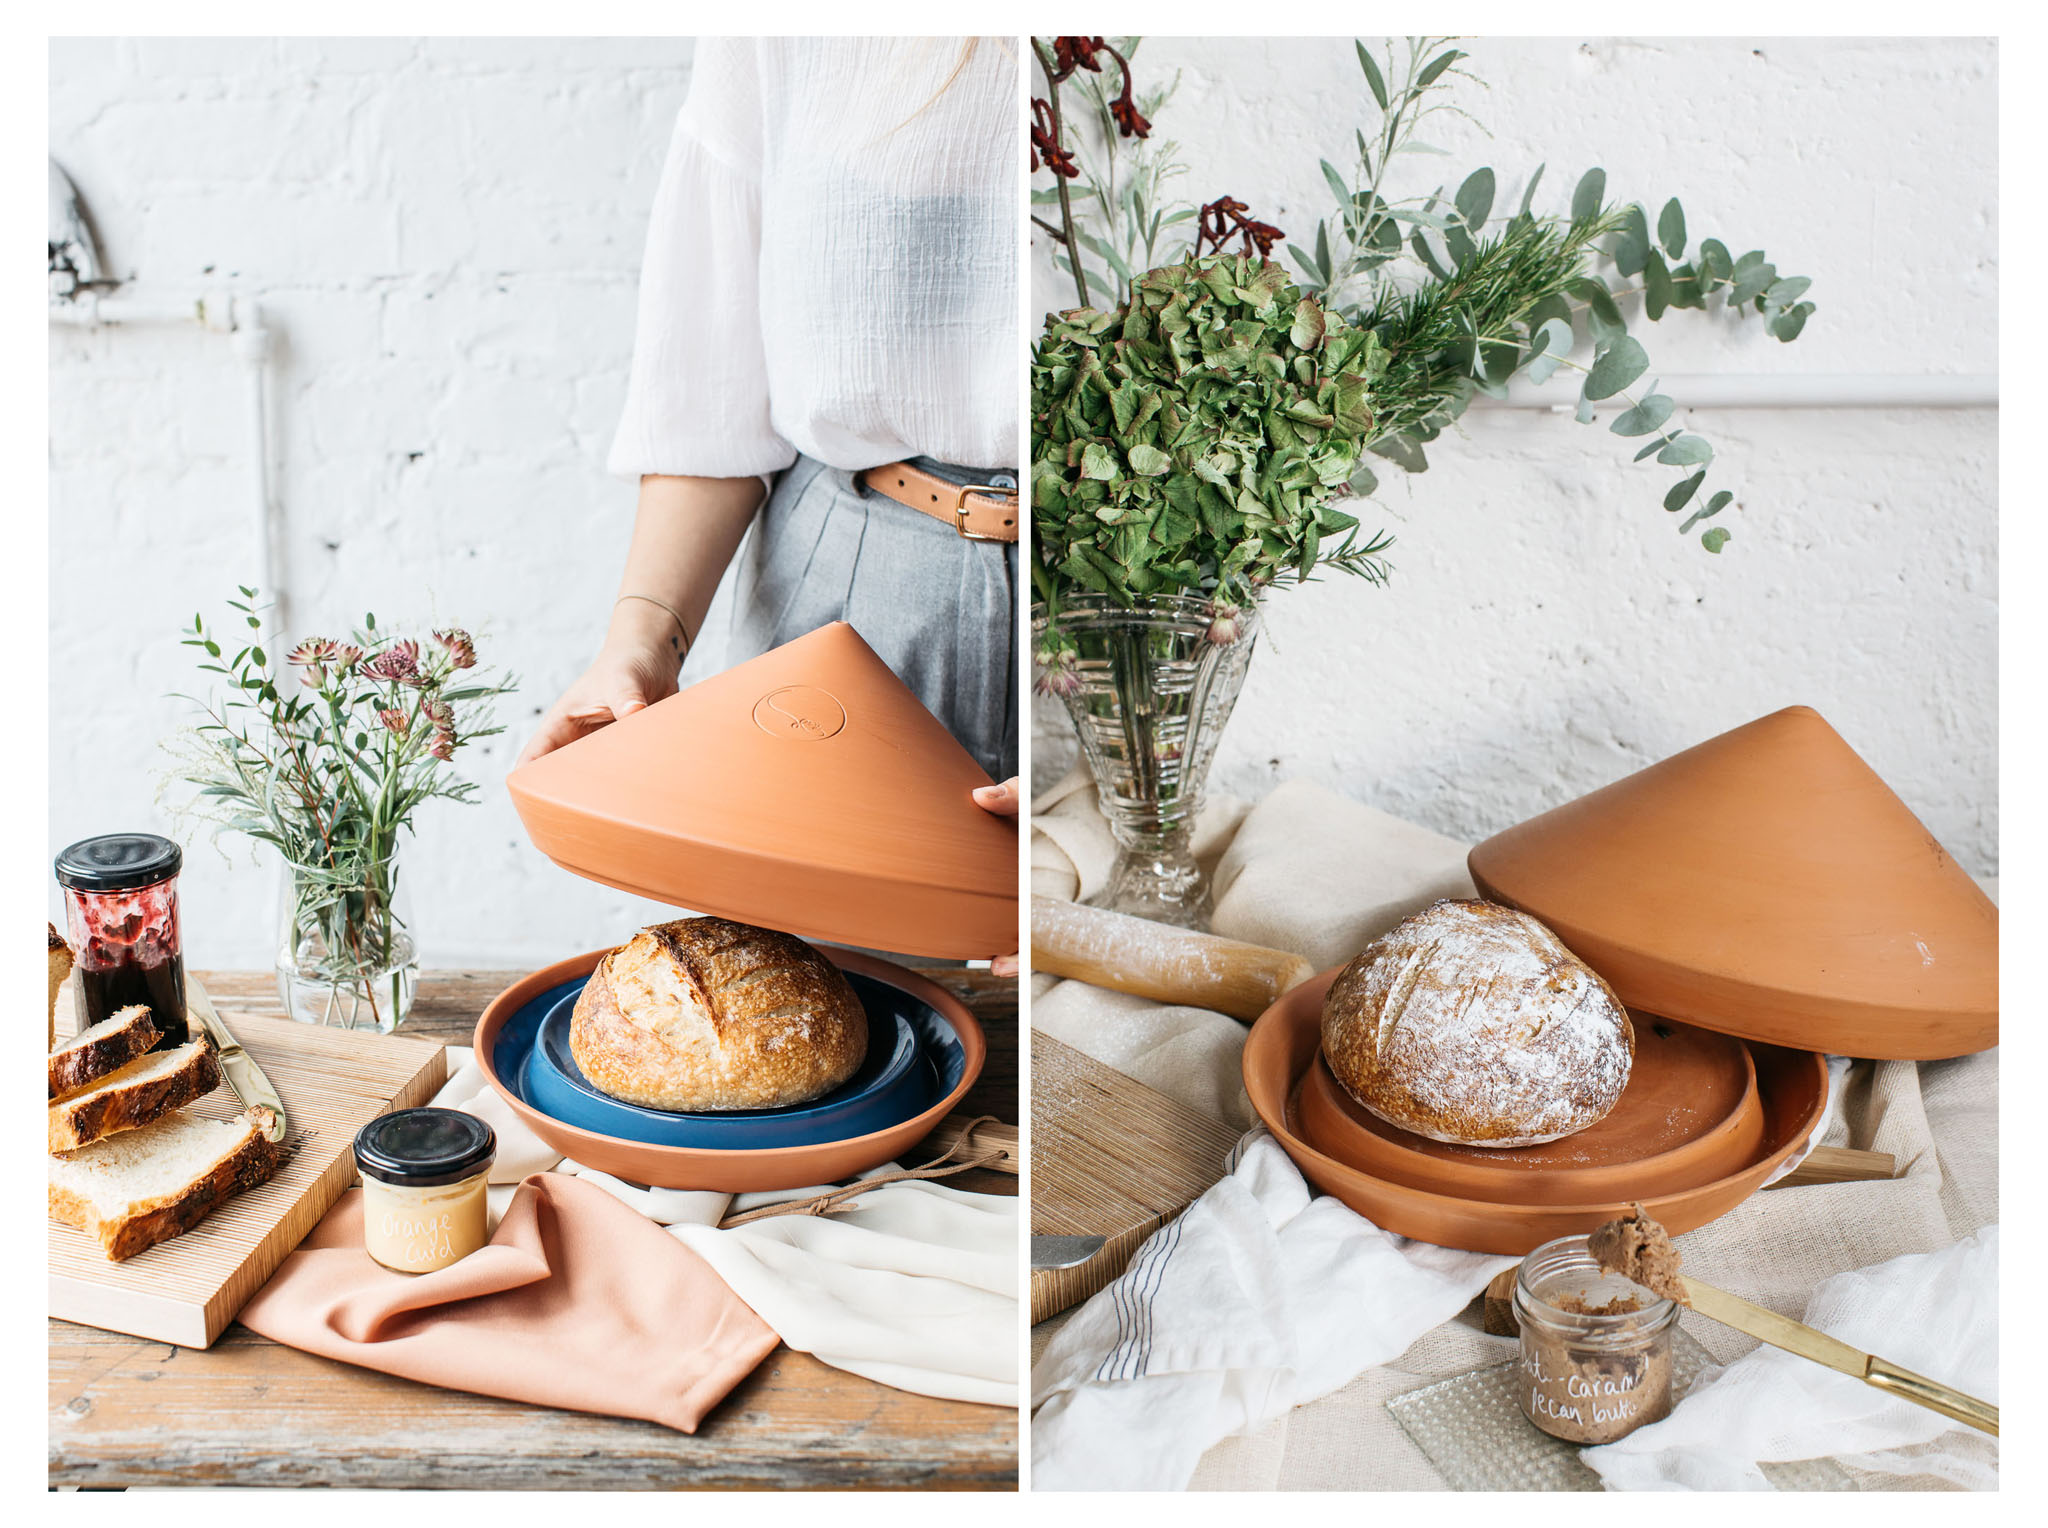 A beautiful brunch club in Hove by One Supper Club and The Spring Oven, styled beautifully by Antonia McKenzie and captured by Emma Croman